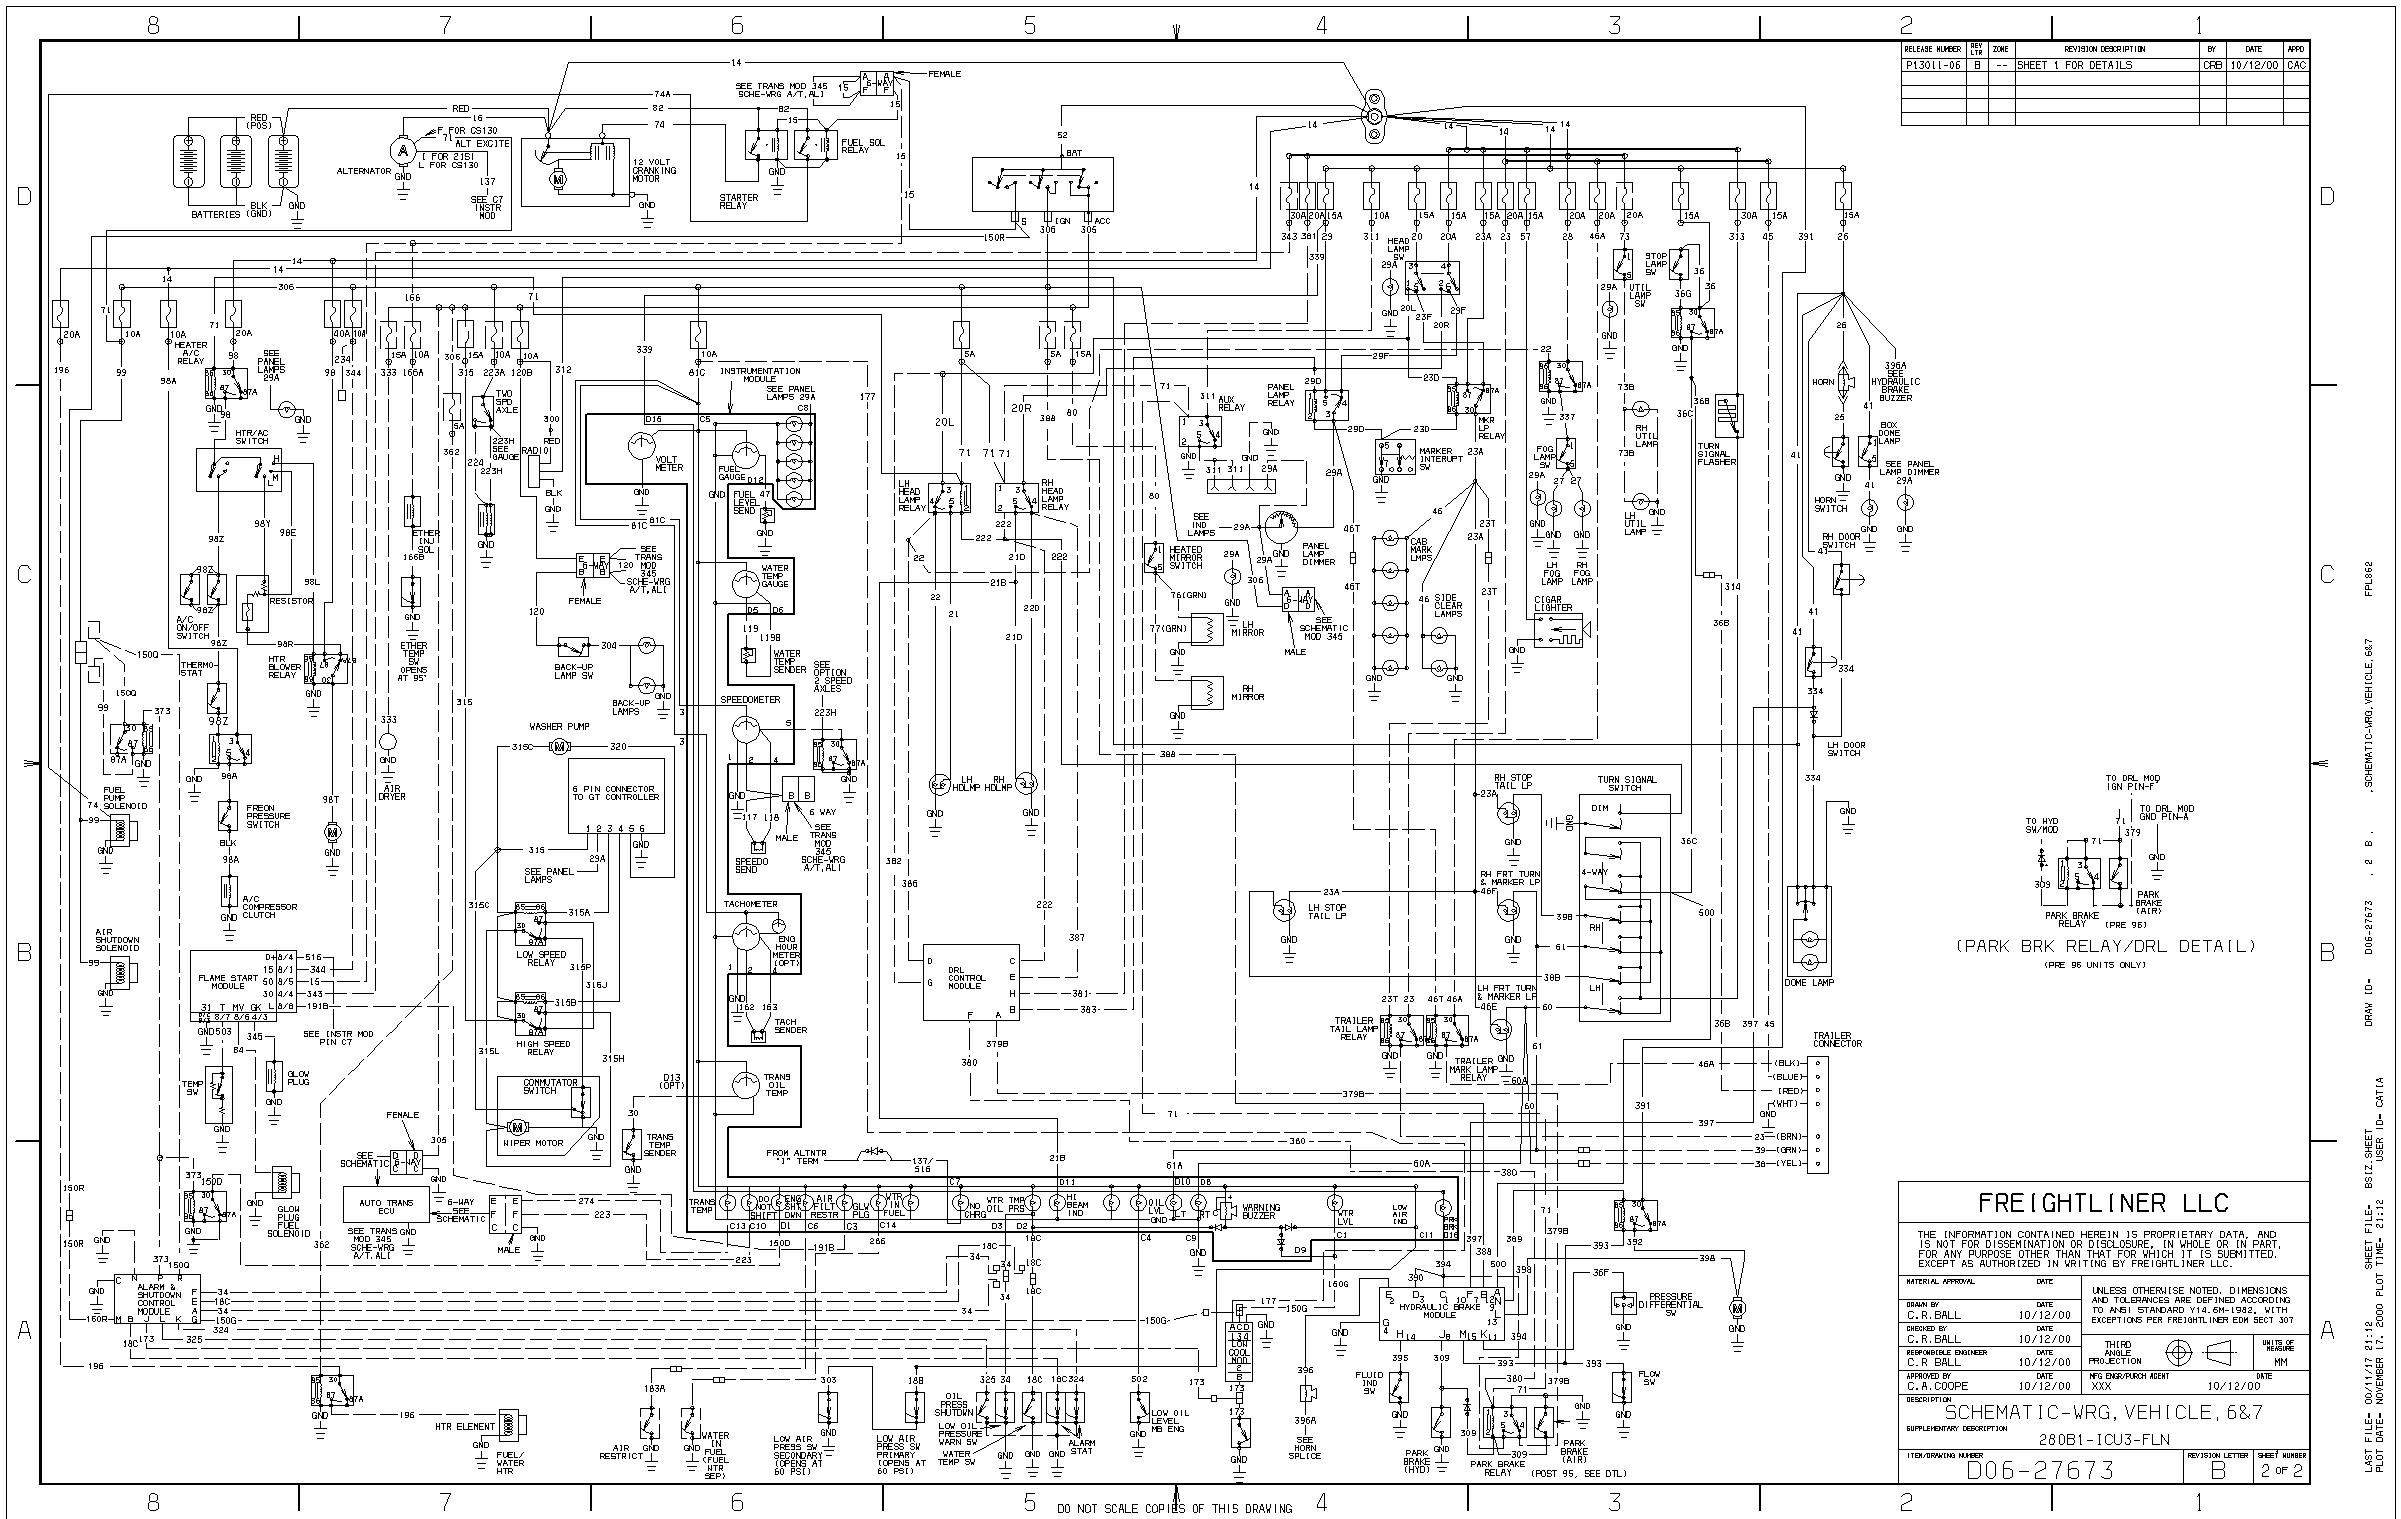 1992 Toyota Camry Engine Diagram Wiring Library 2005 2007 Sterling Truck Diagrams 2003 2 4